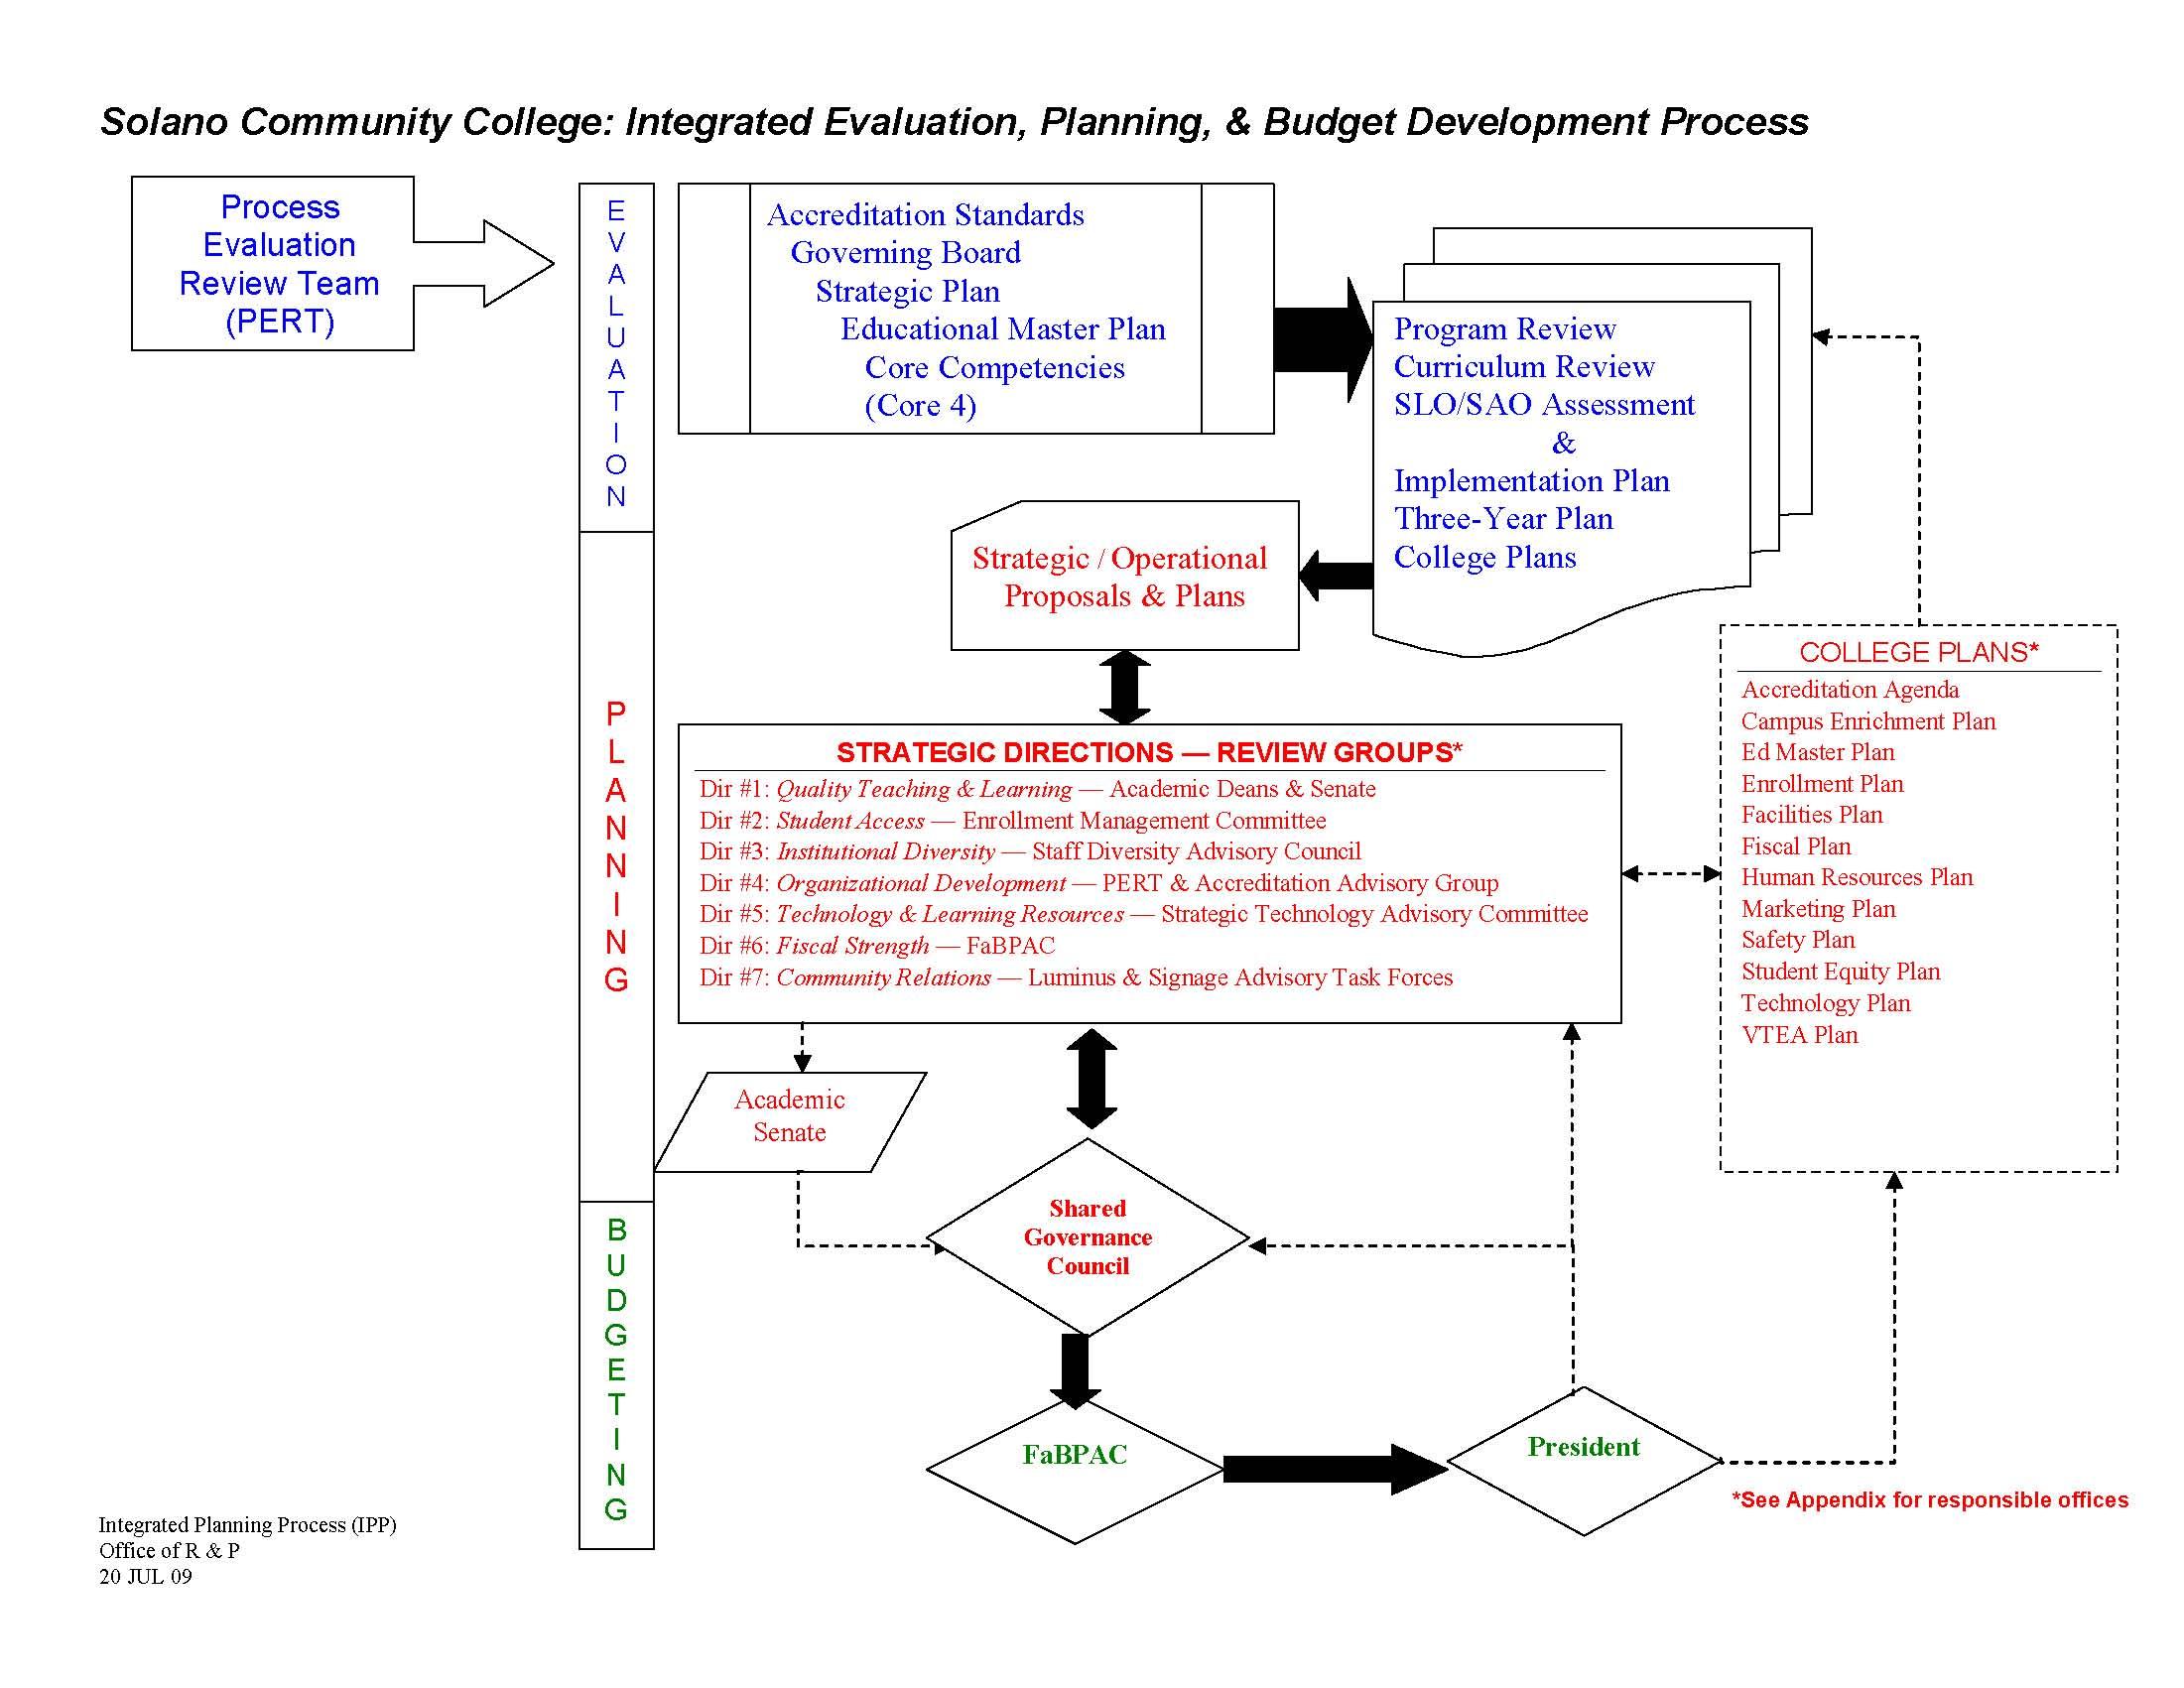 detail implementation plan for enrollment system Study and design of computerized enrollment system - documentation - download as word doc (doc / docx), pdf file (pdf), text file (txt) or read online.